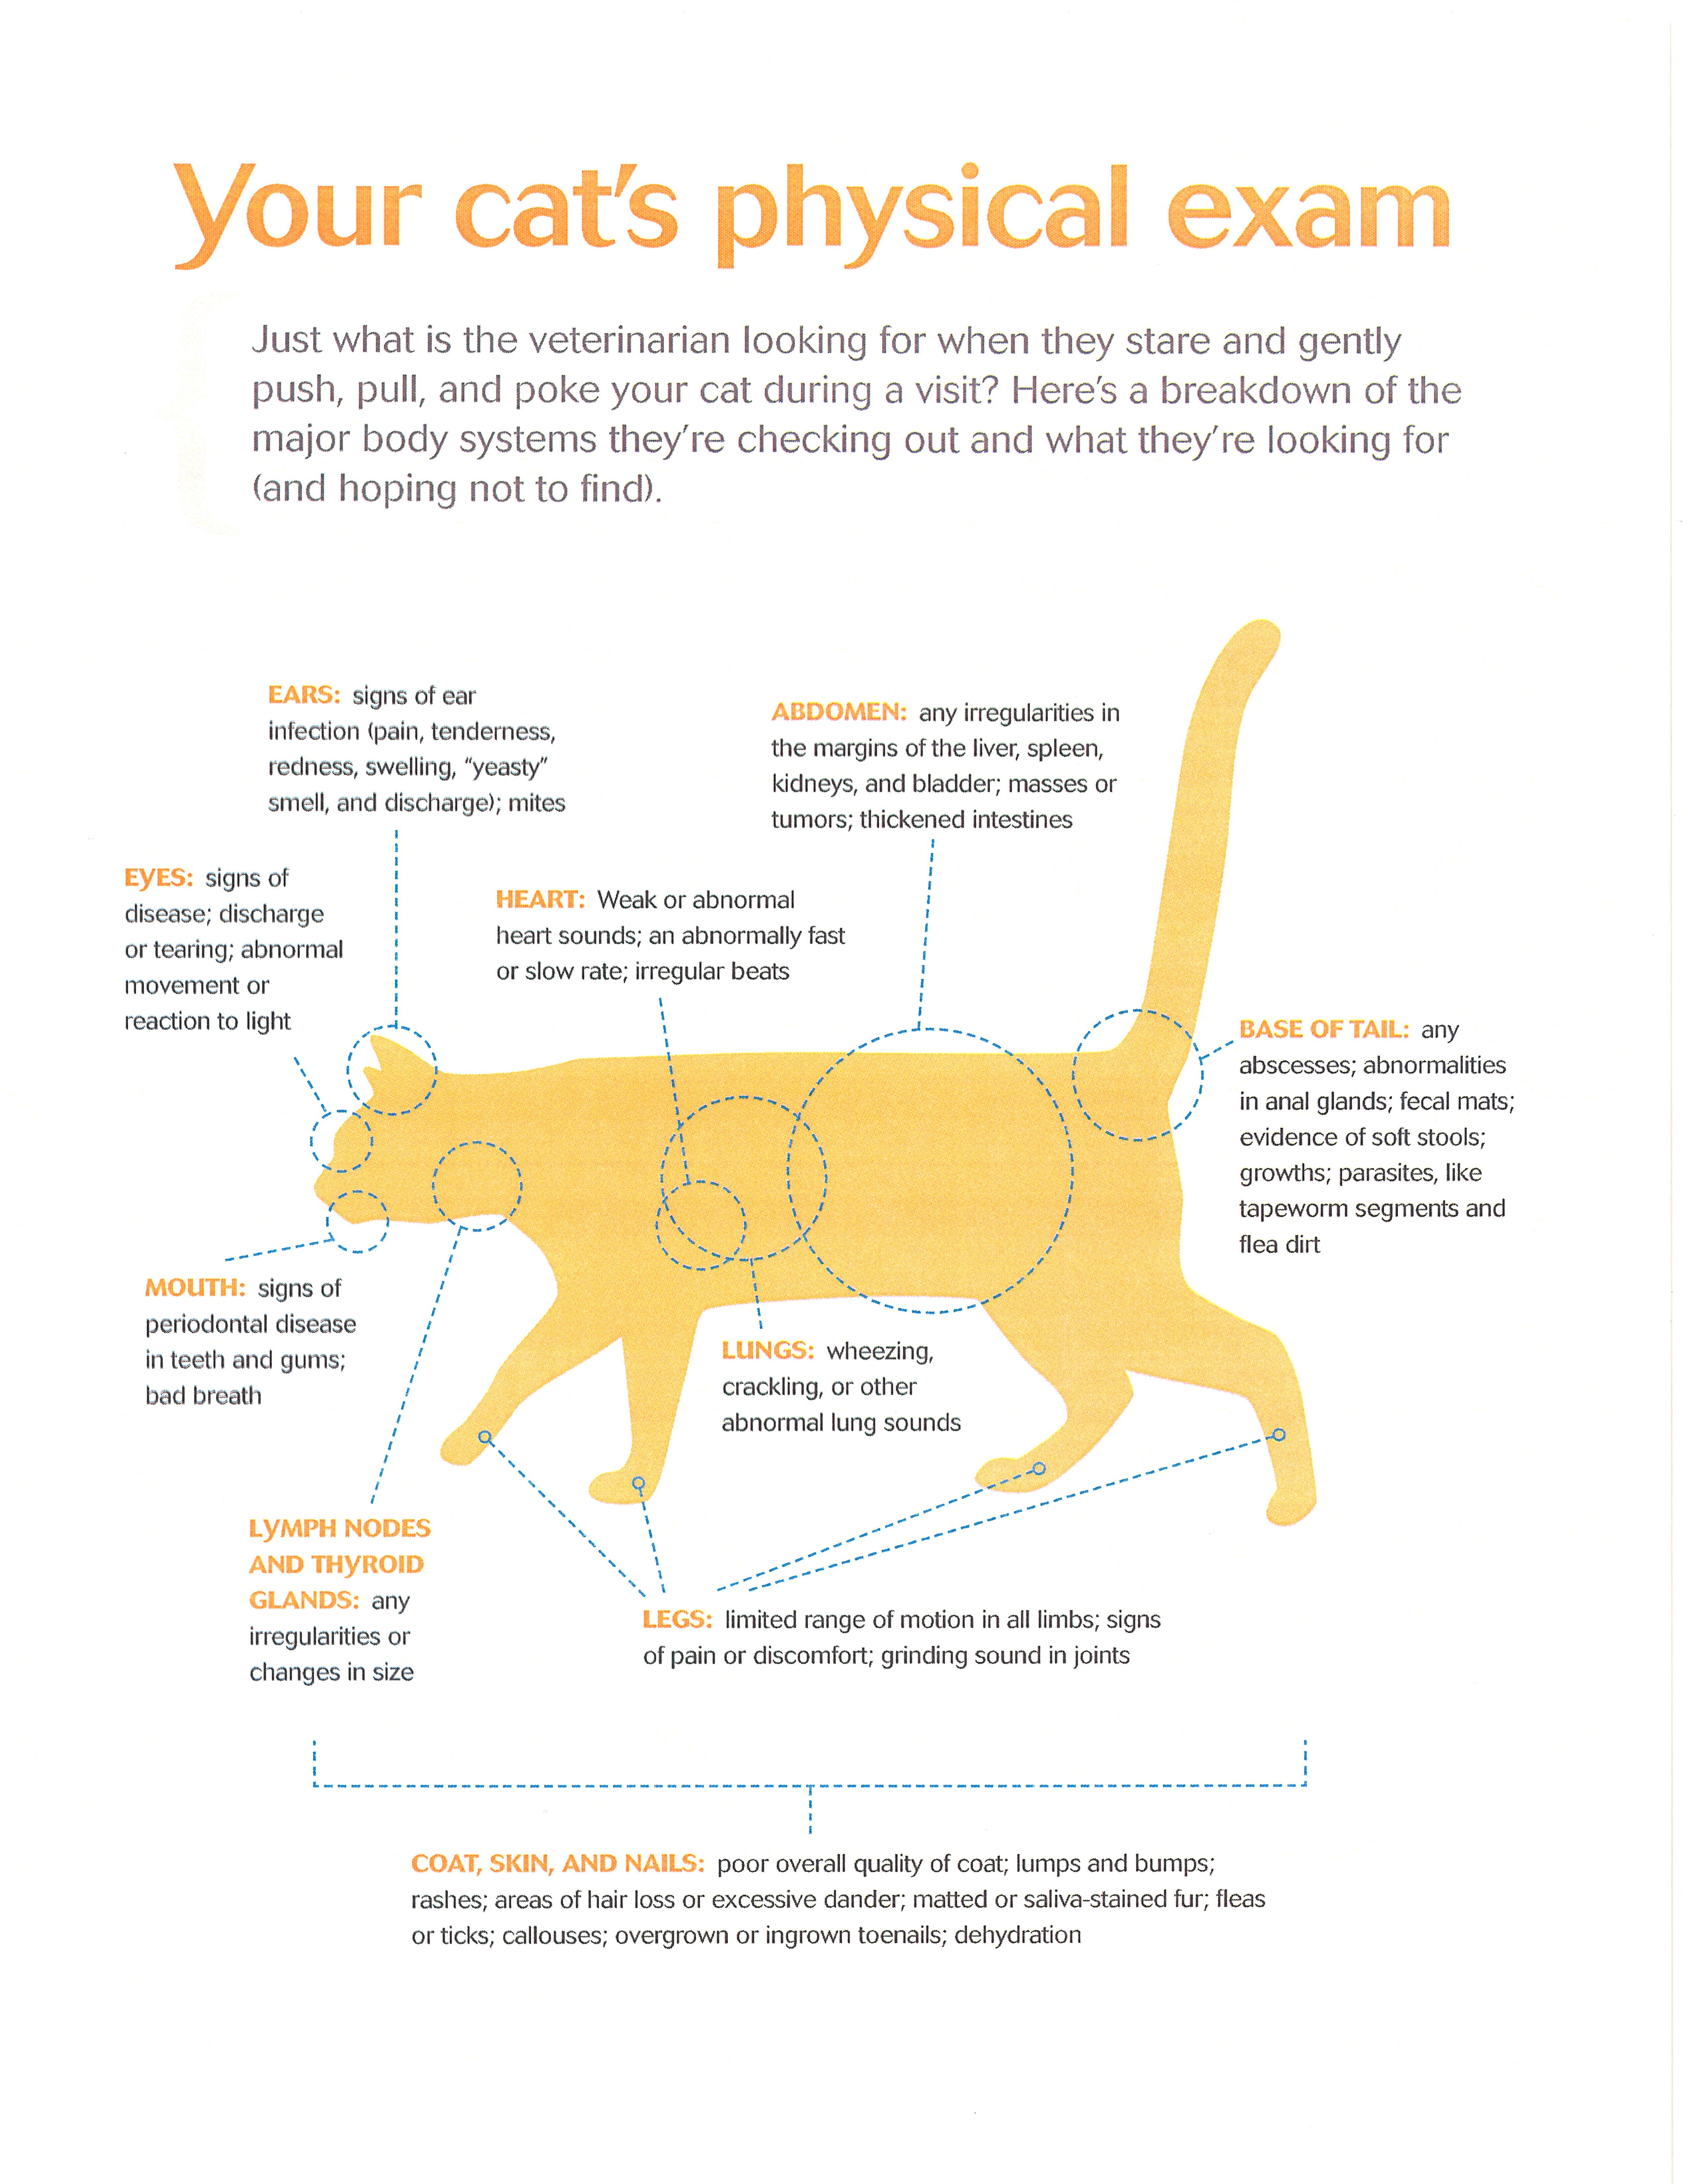 Your cat's physical exam what your veterinarian is